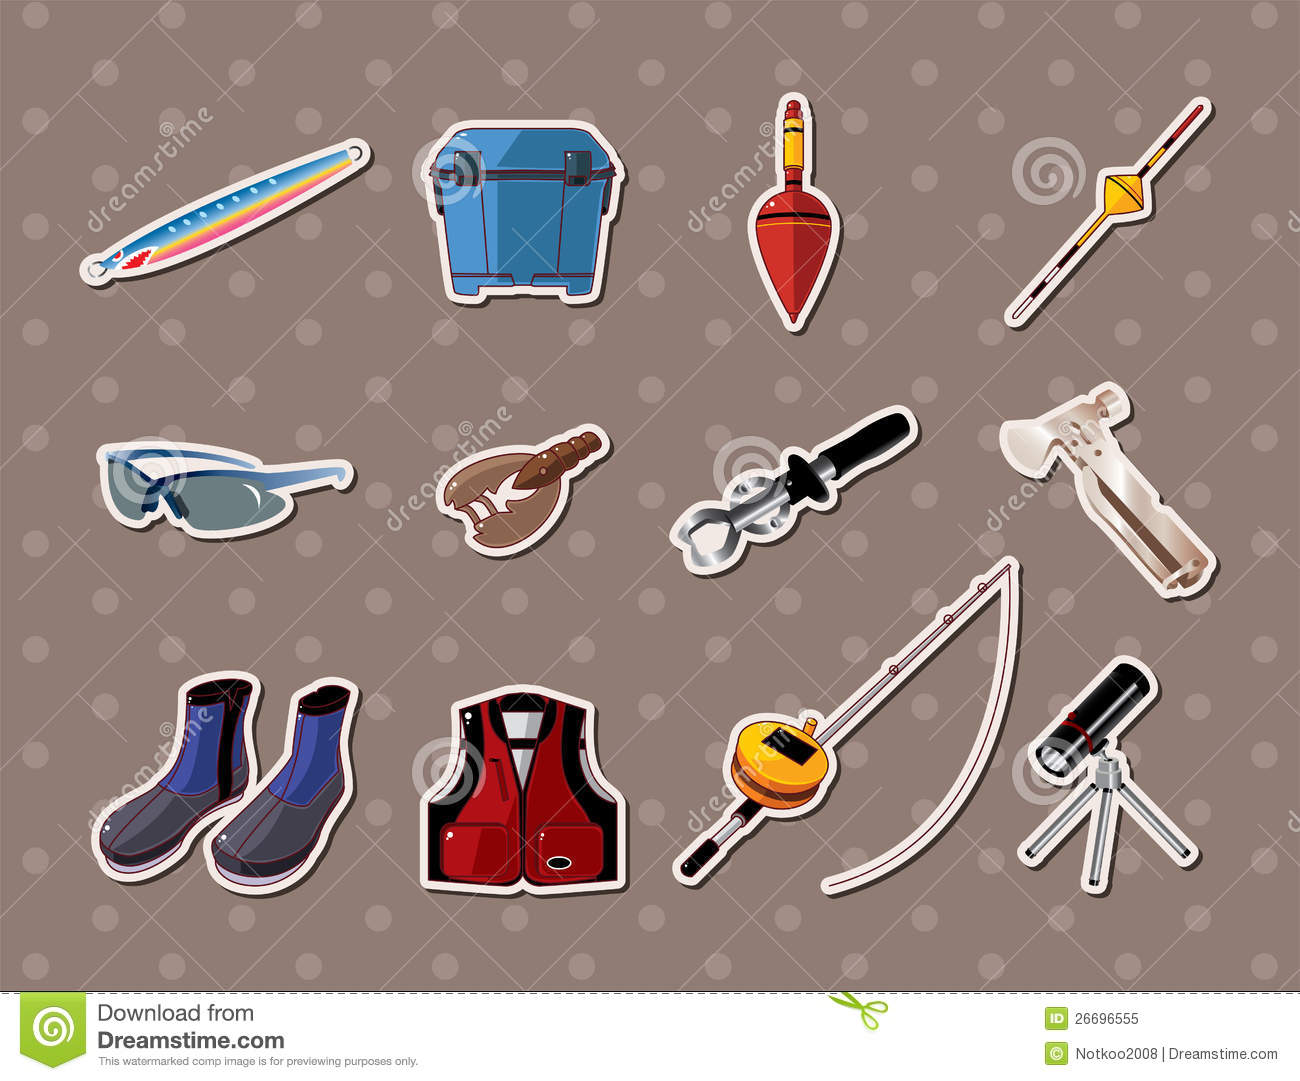 Fishing stickers royalty free stock photo image 26696555 for Free fishing stickers